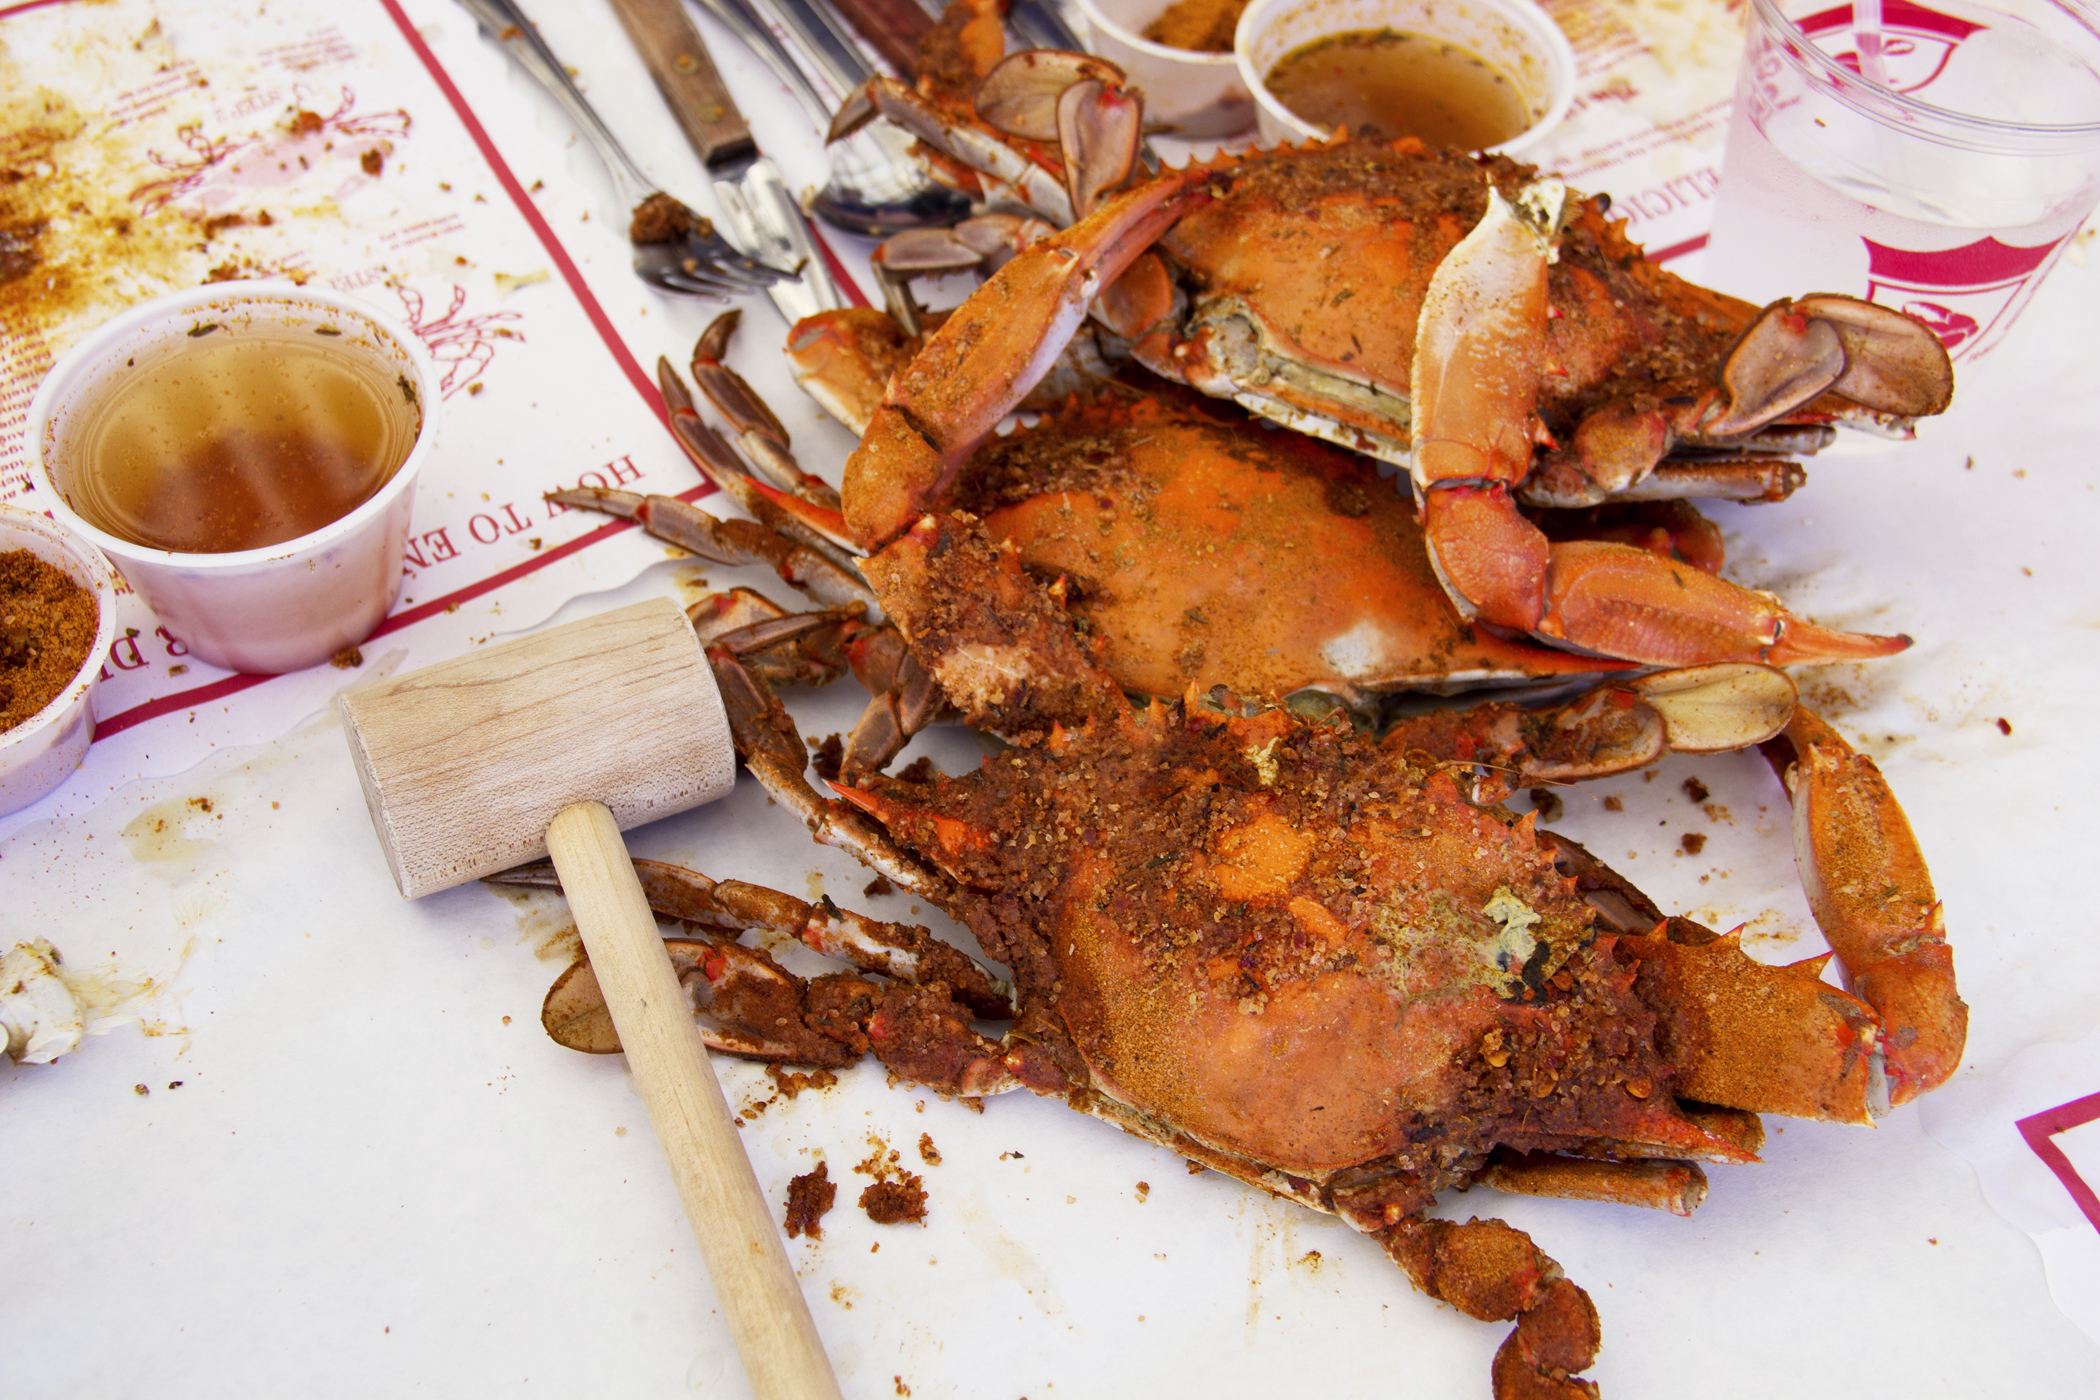 Old bay–spiced hard-shell crabs